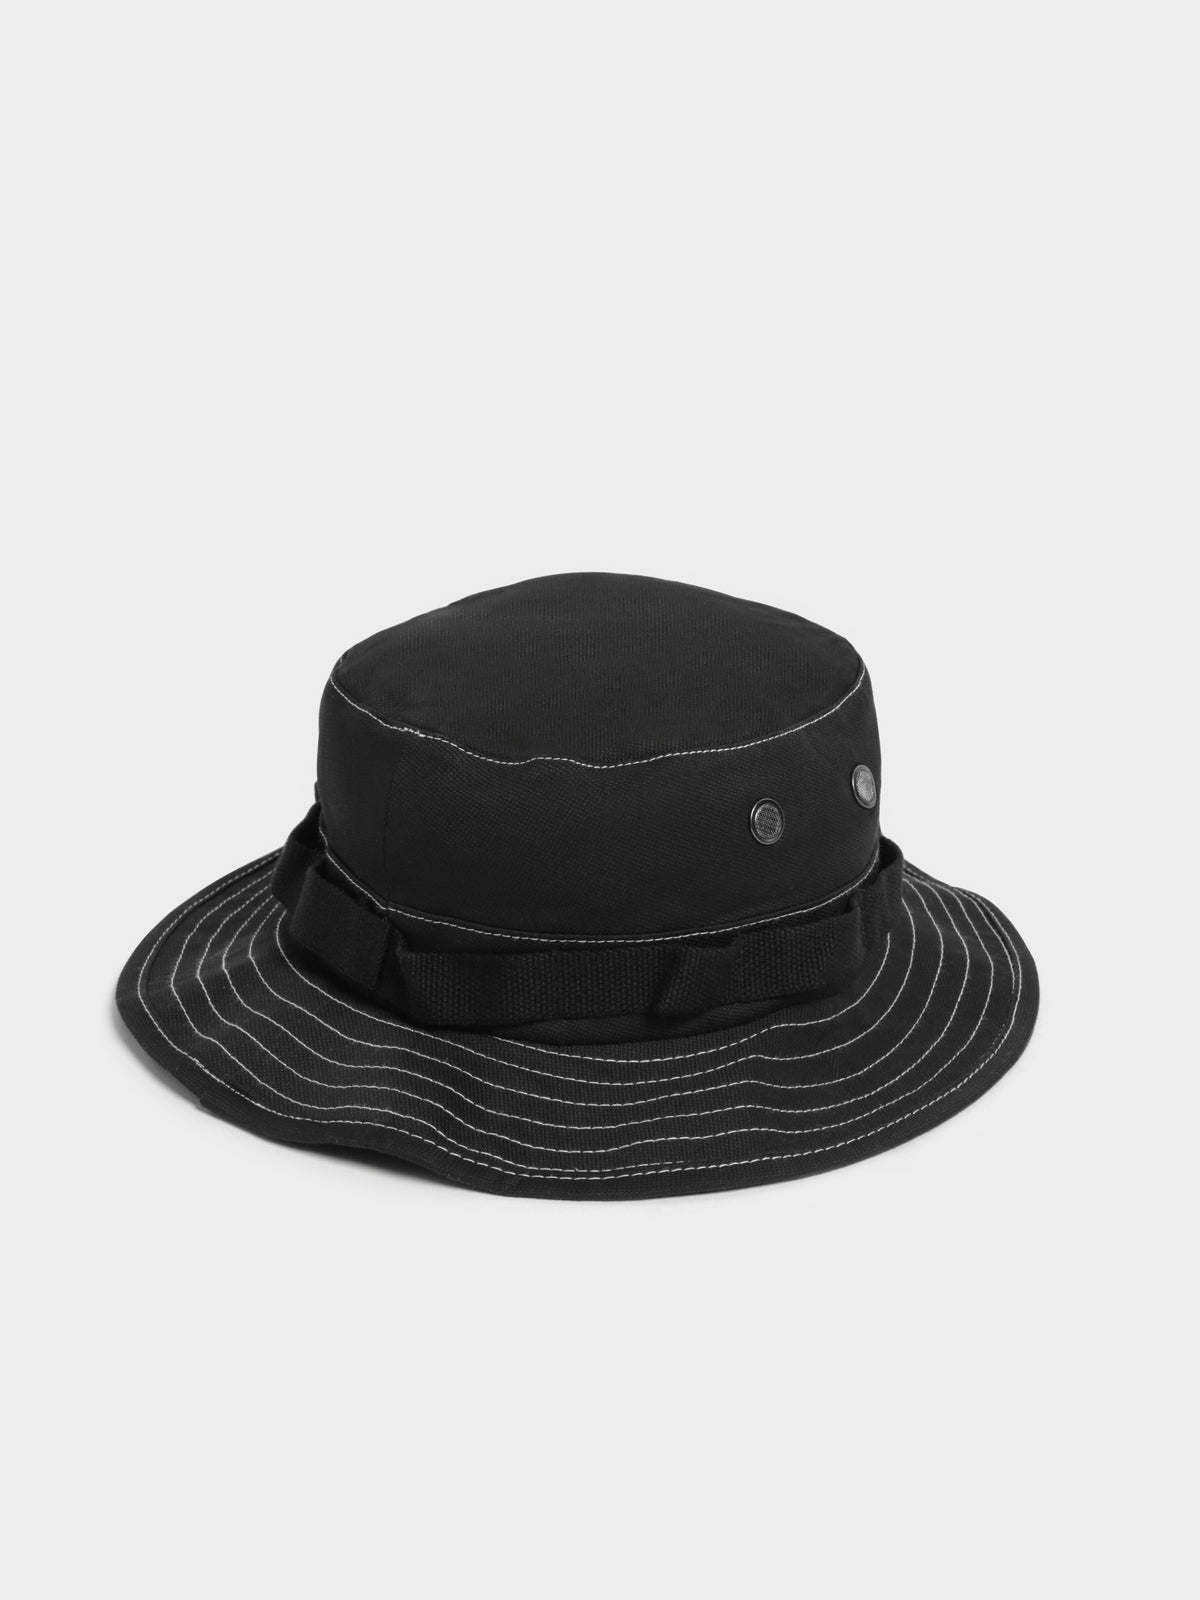 Contrast Stitch Boonie Hat in Black & White